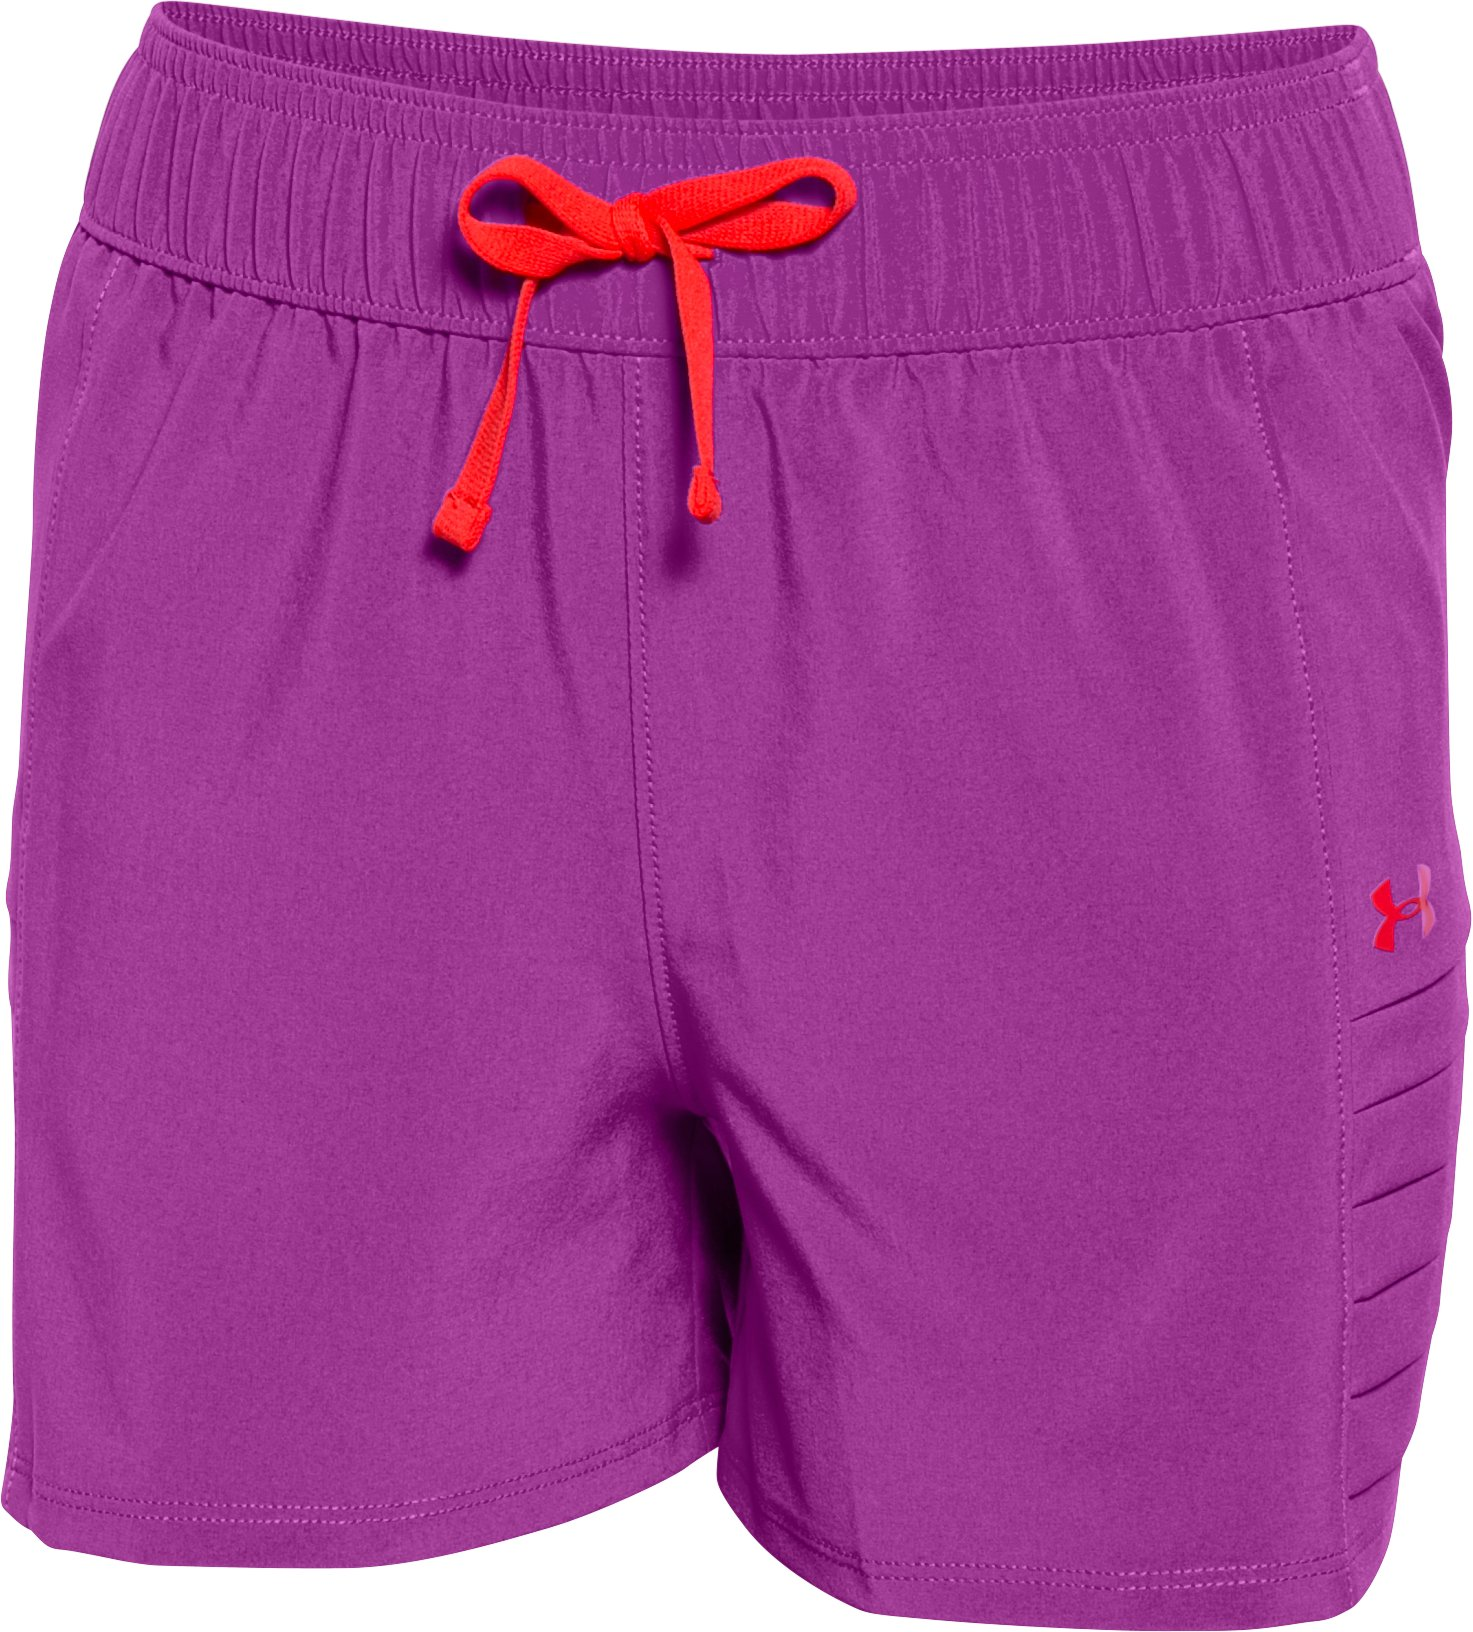 Girls' UA Woven Short, STROBE, zoomed image